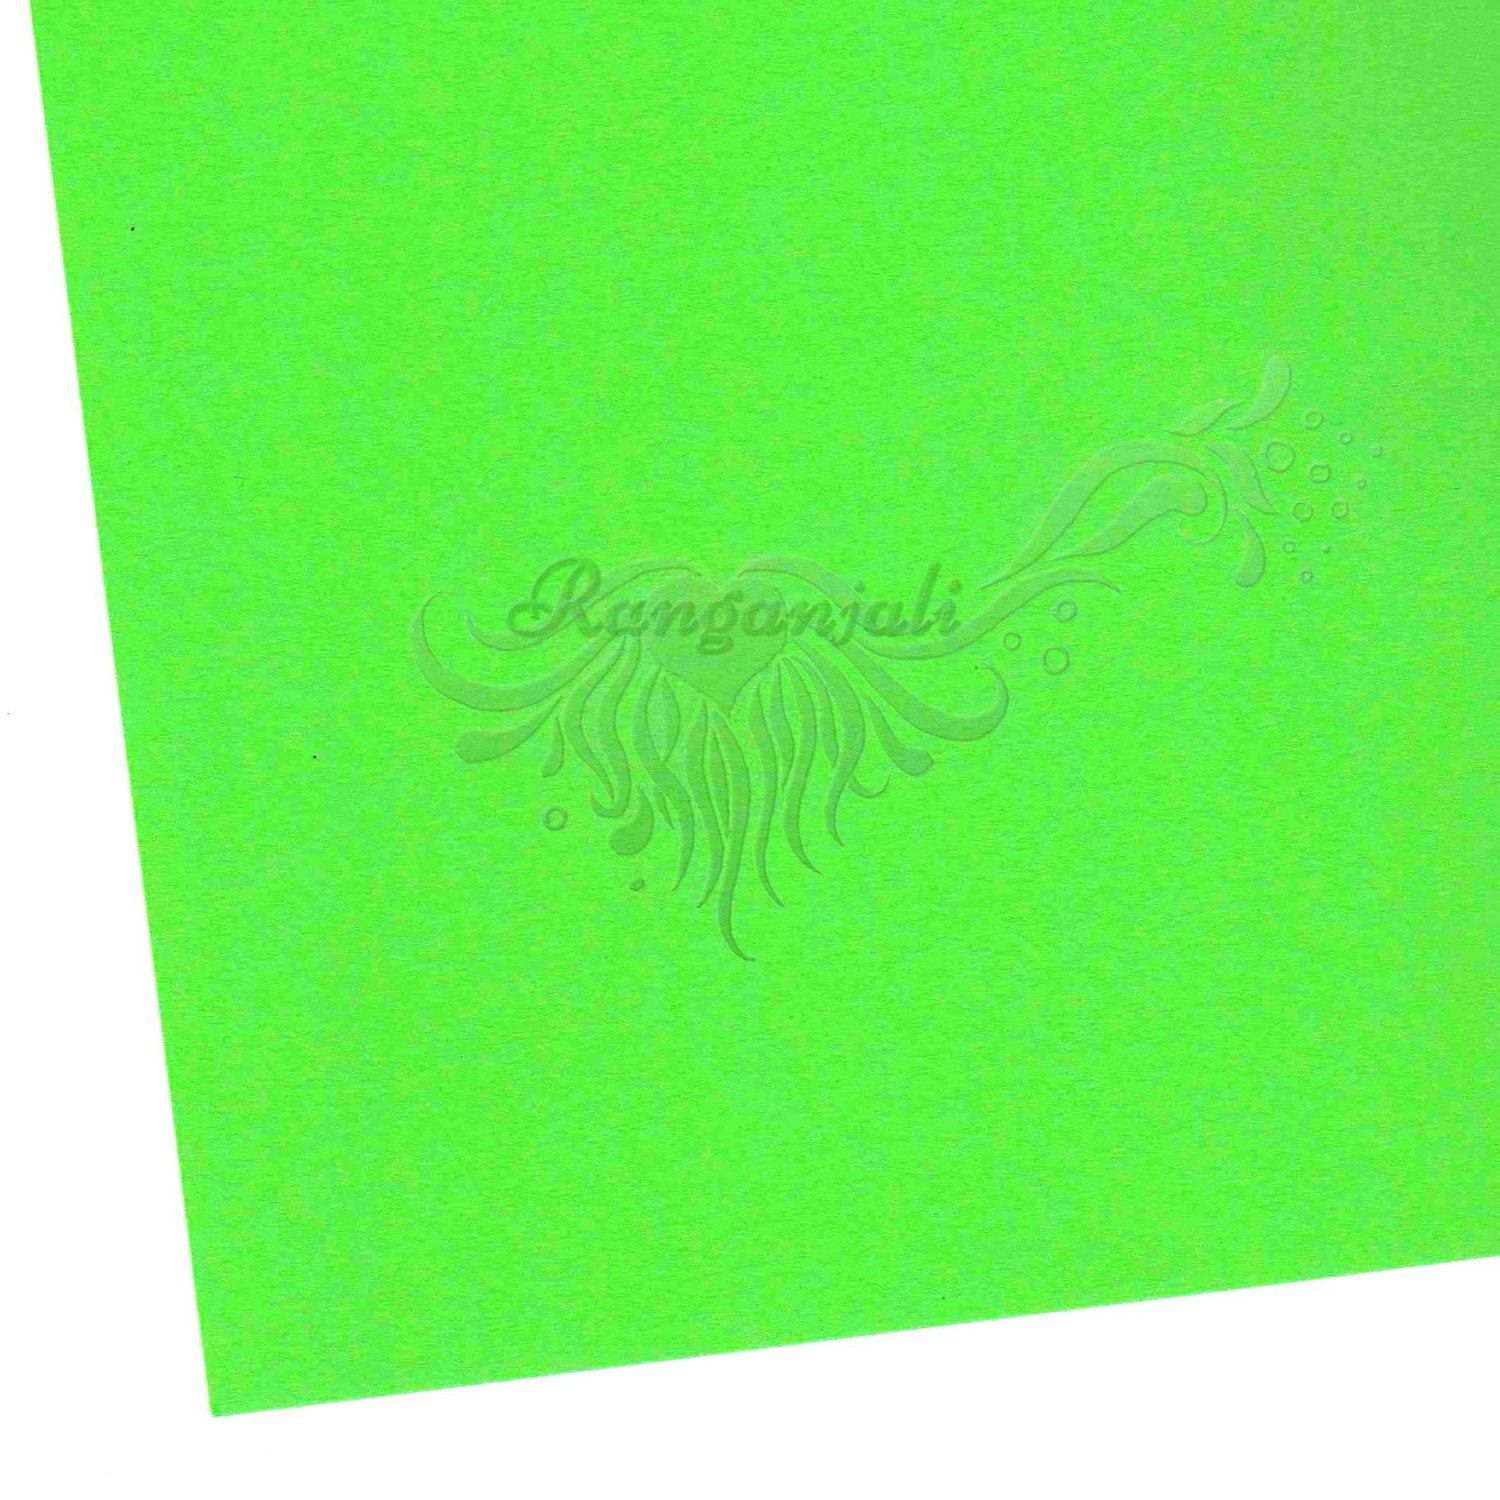 GANGNEUNG GREEN - 250GSM Heavyweight Smooth A4 Cardstock- 5/pk